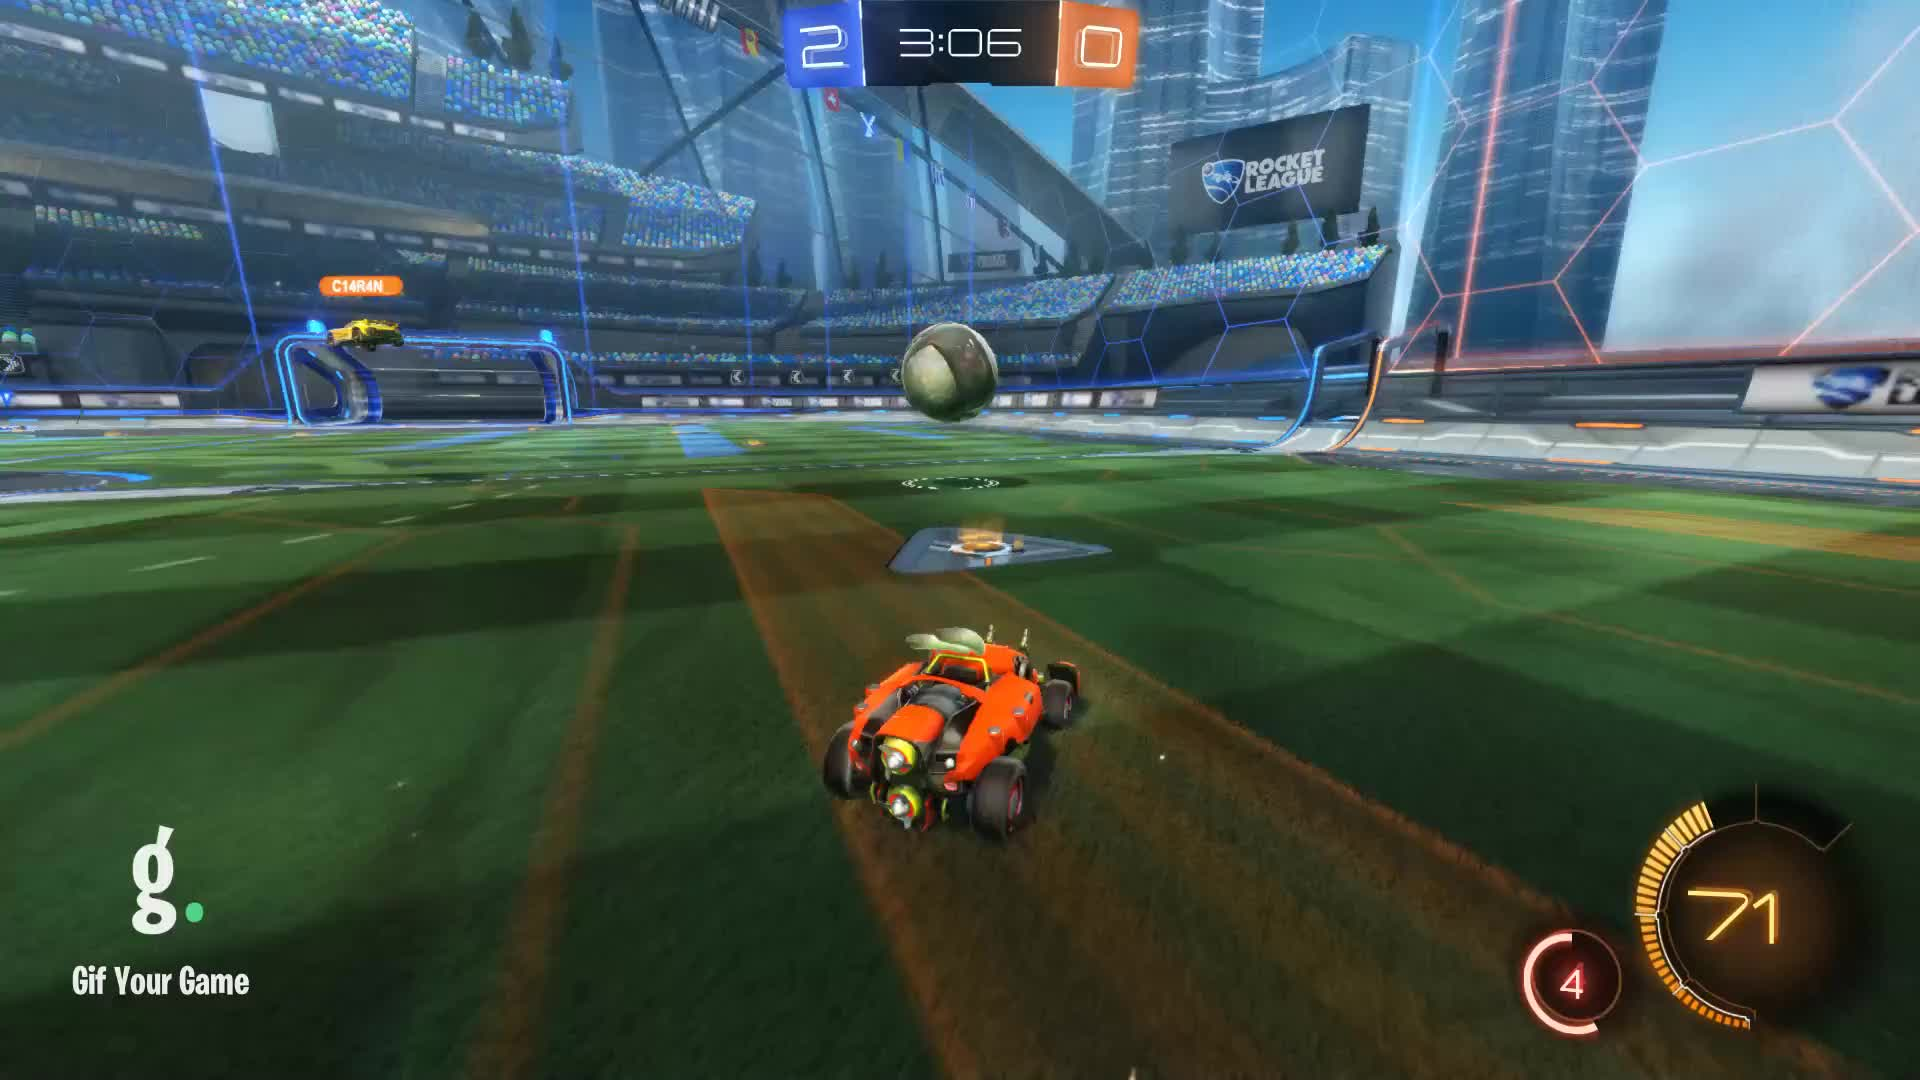 CROSSFIT JESUS, Gif Your Game, GifYourGame, Rocket League, RocketLeague, celebrity, celebs, phil mcgraw, Remixed Assist 2: CROSSFIT JESUS GIFs